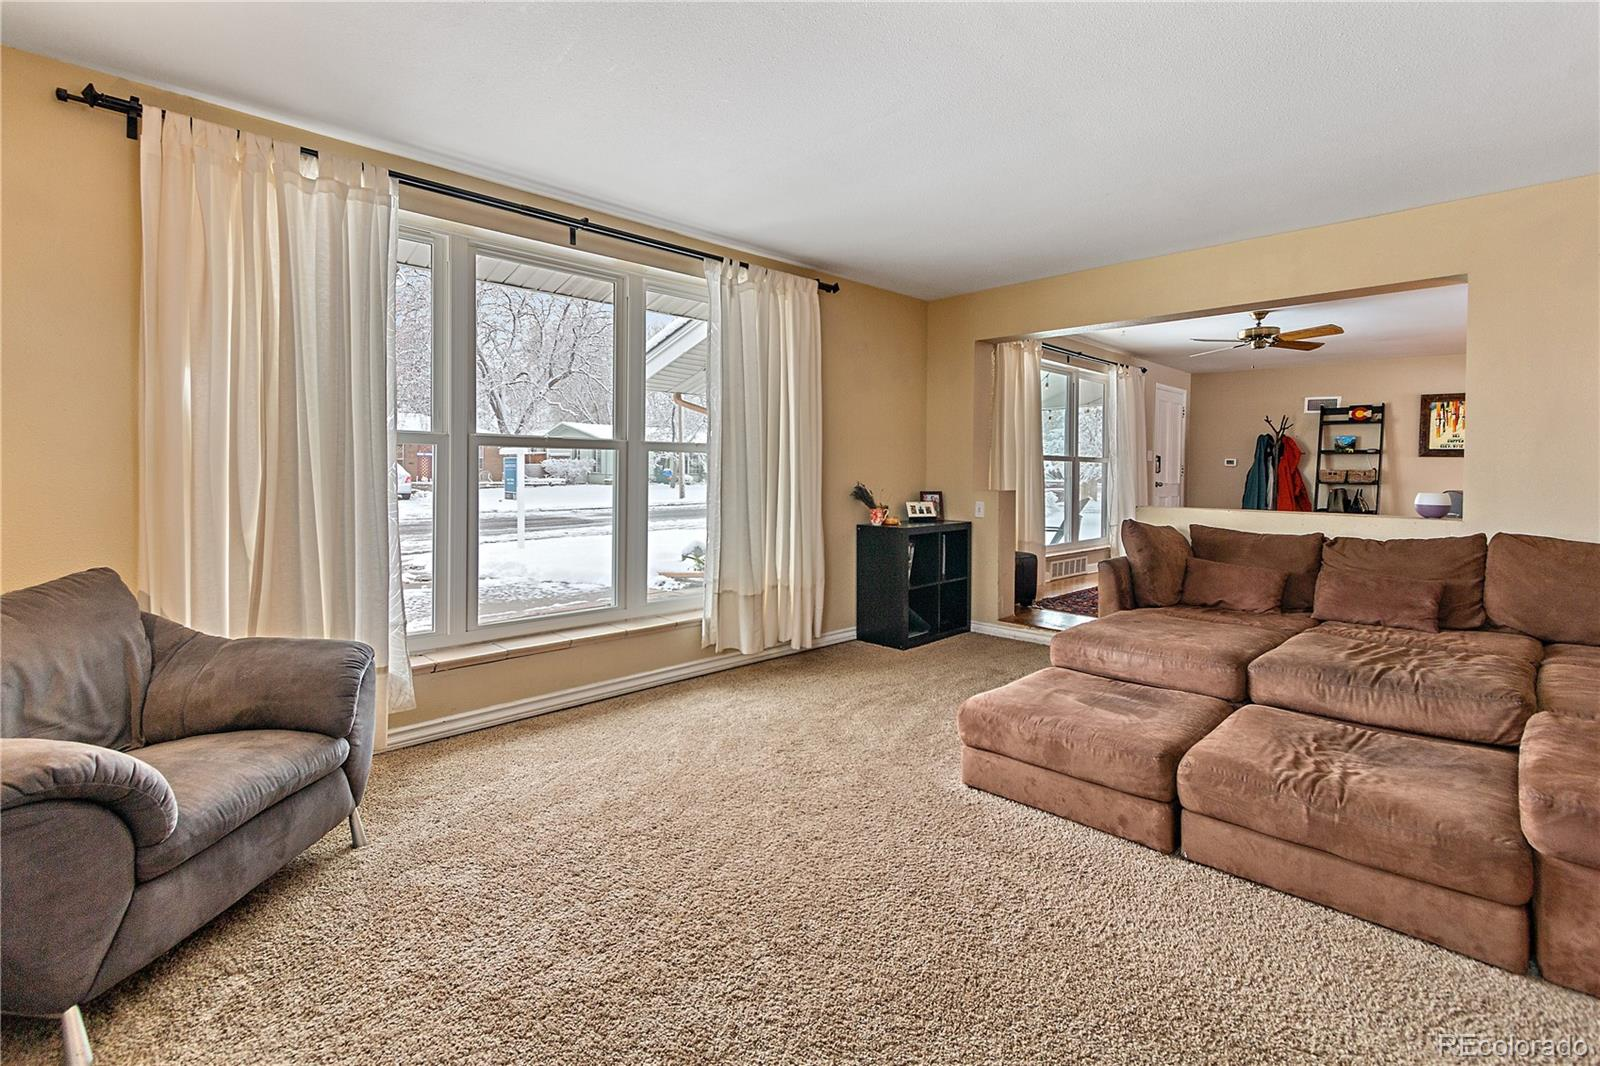 MLS# 5584211 - 8 - 8105 W 16th Place, Lakewood, CO 80214